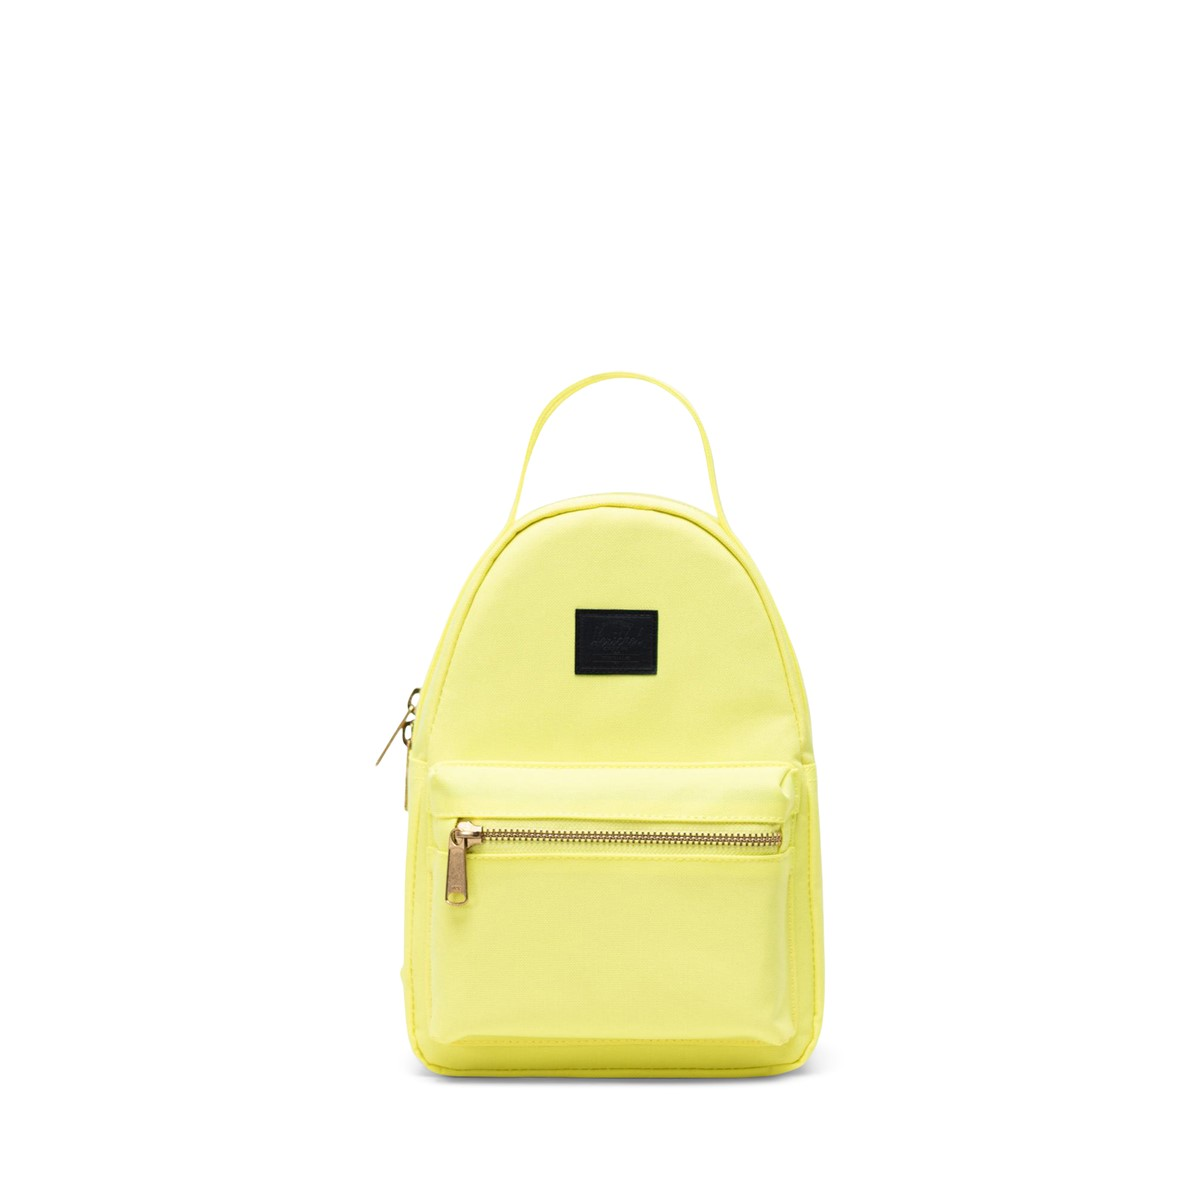 Nova Mini Backpack in Neon Yellow